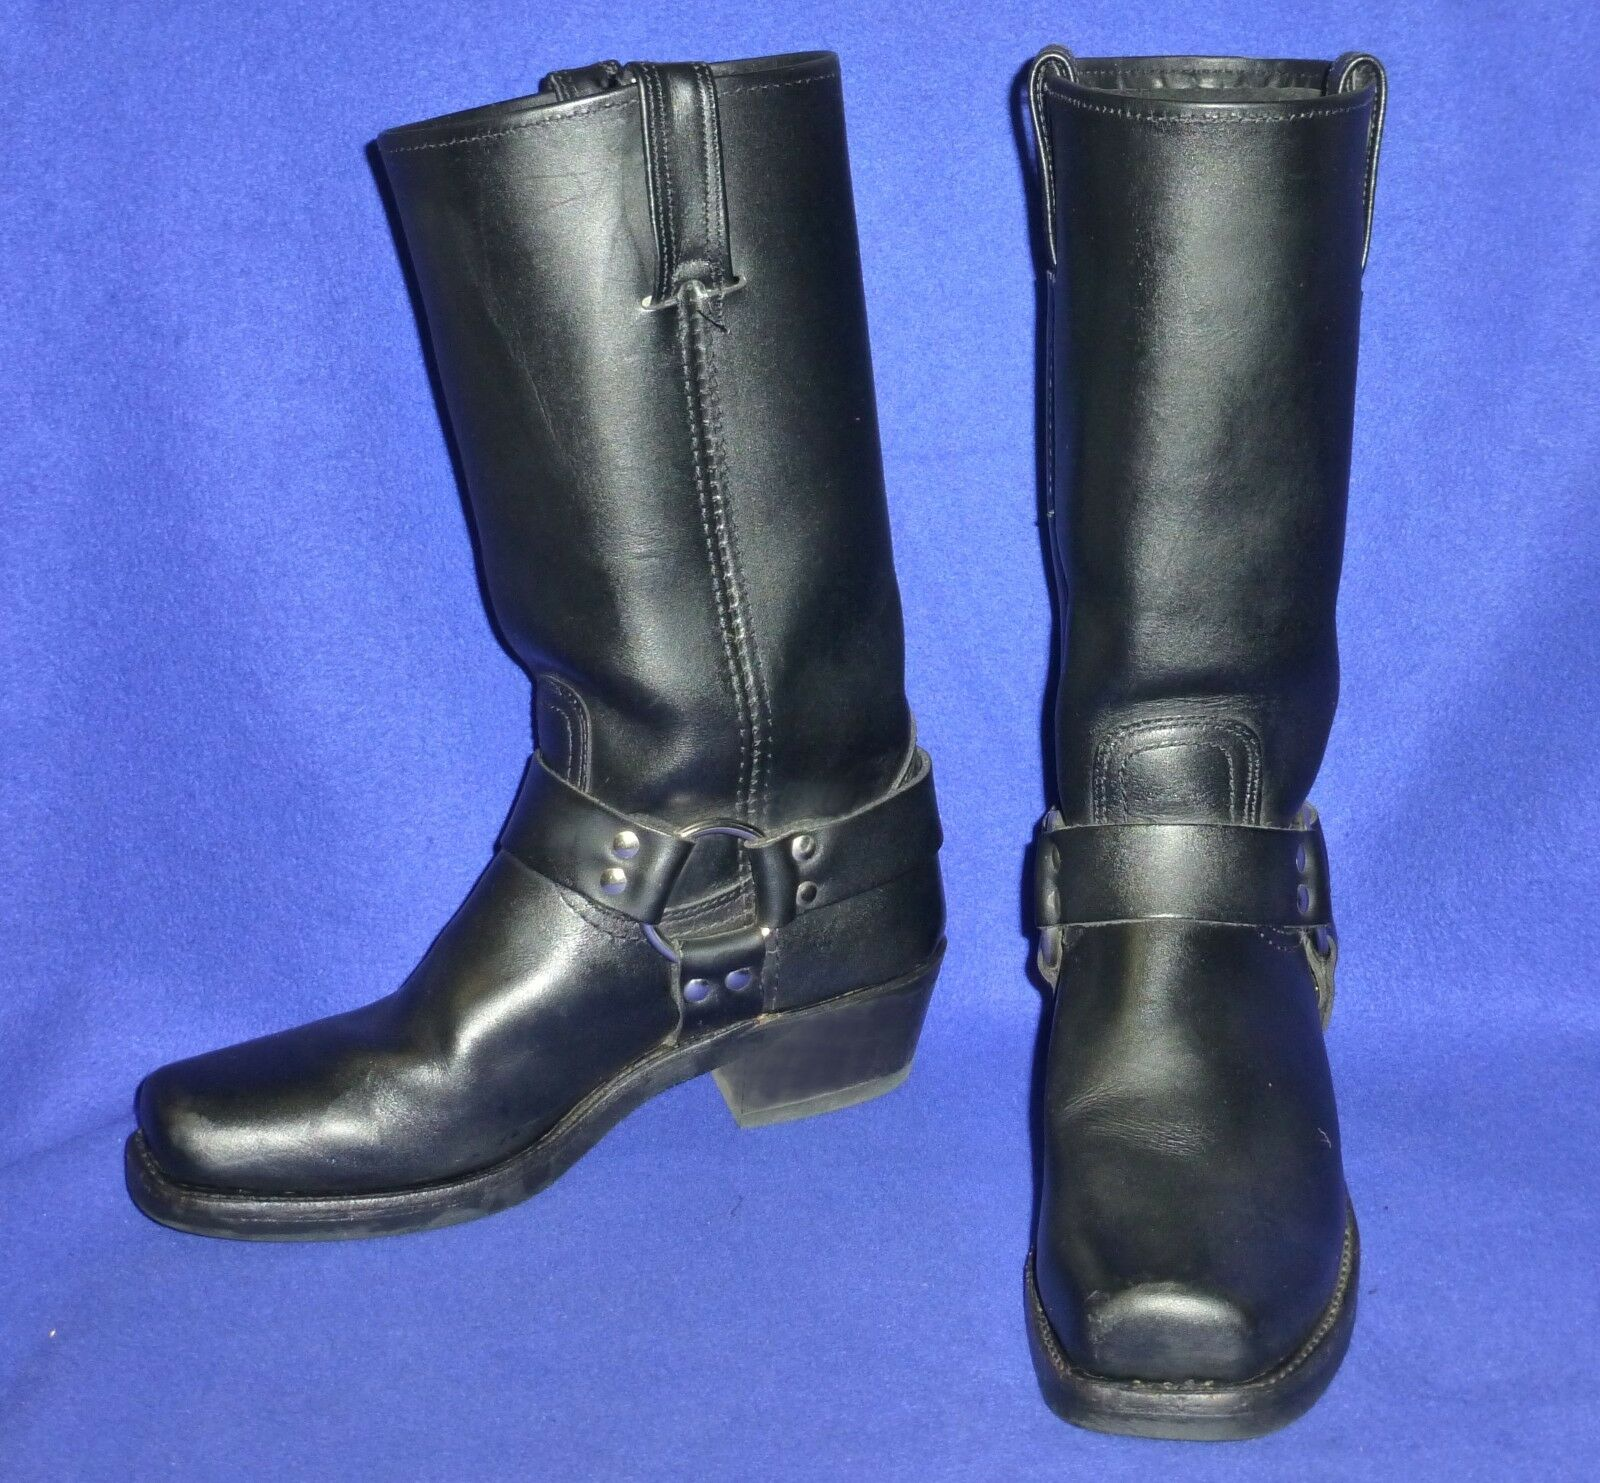 7 M EXCELLENT 77300 GENUINE FRYE HARNESS BLACK 77300 EXCELLENT  WOMENS BIKER MOTORCYCLE BOOTS 45b149